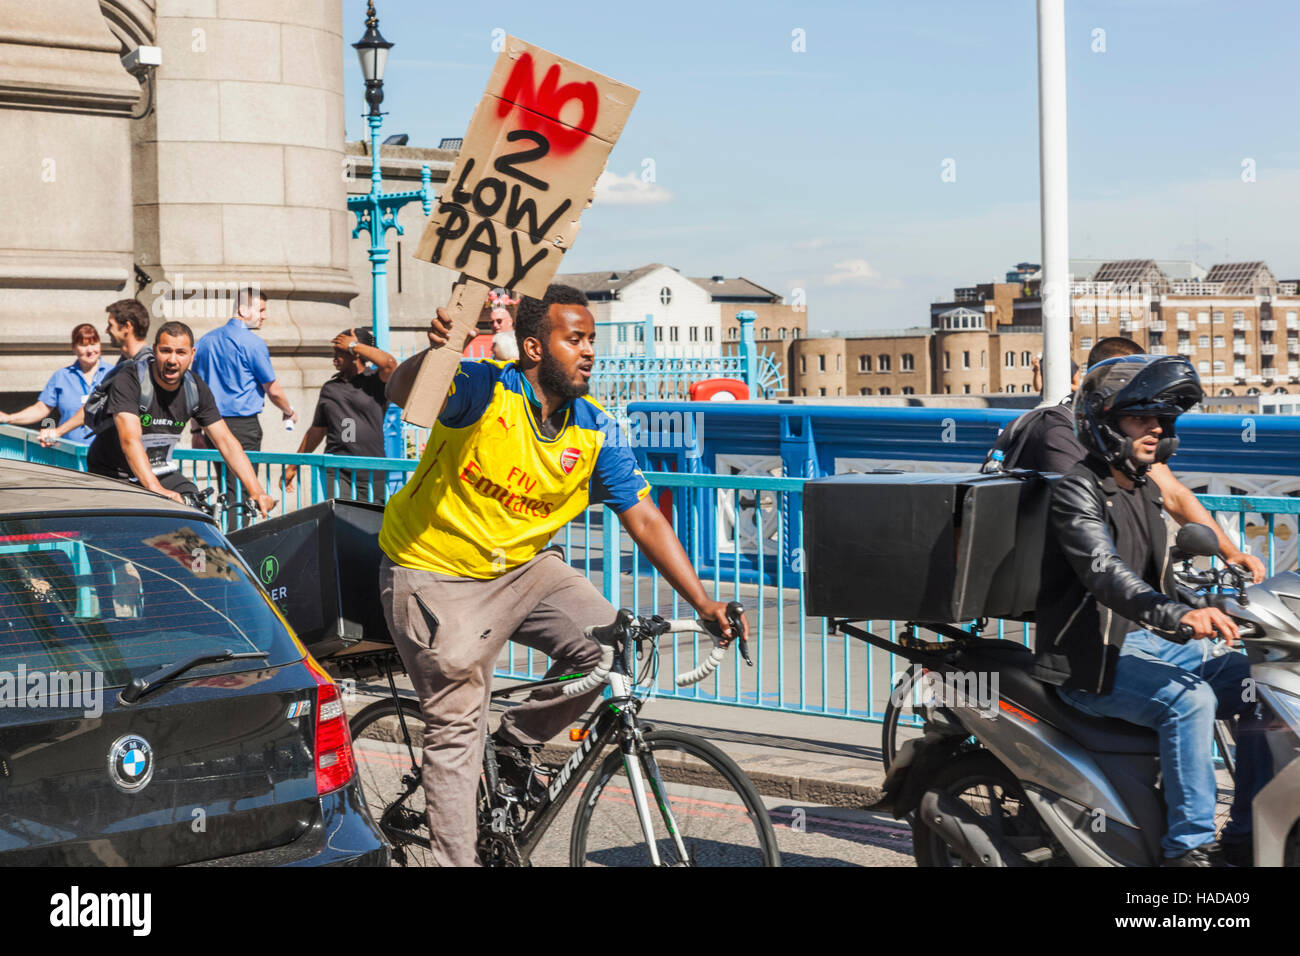 England, London, No to Low Pay Demonstrator on Bicycle - Stock Image